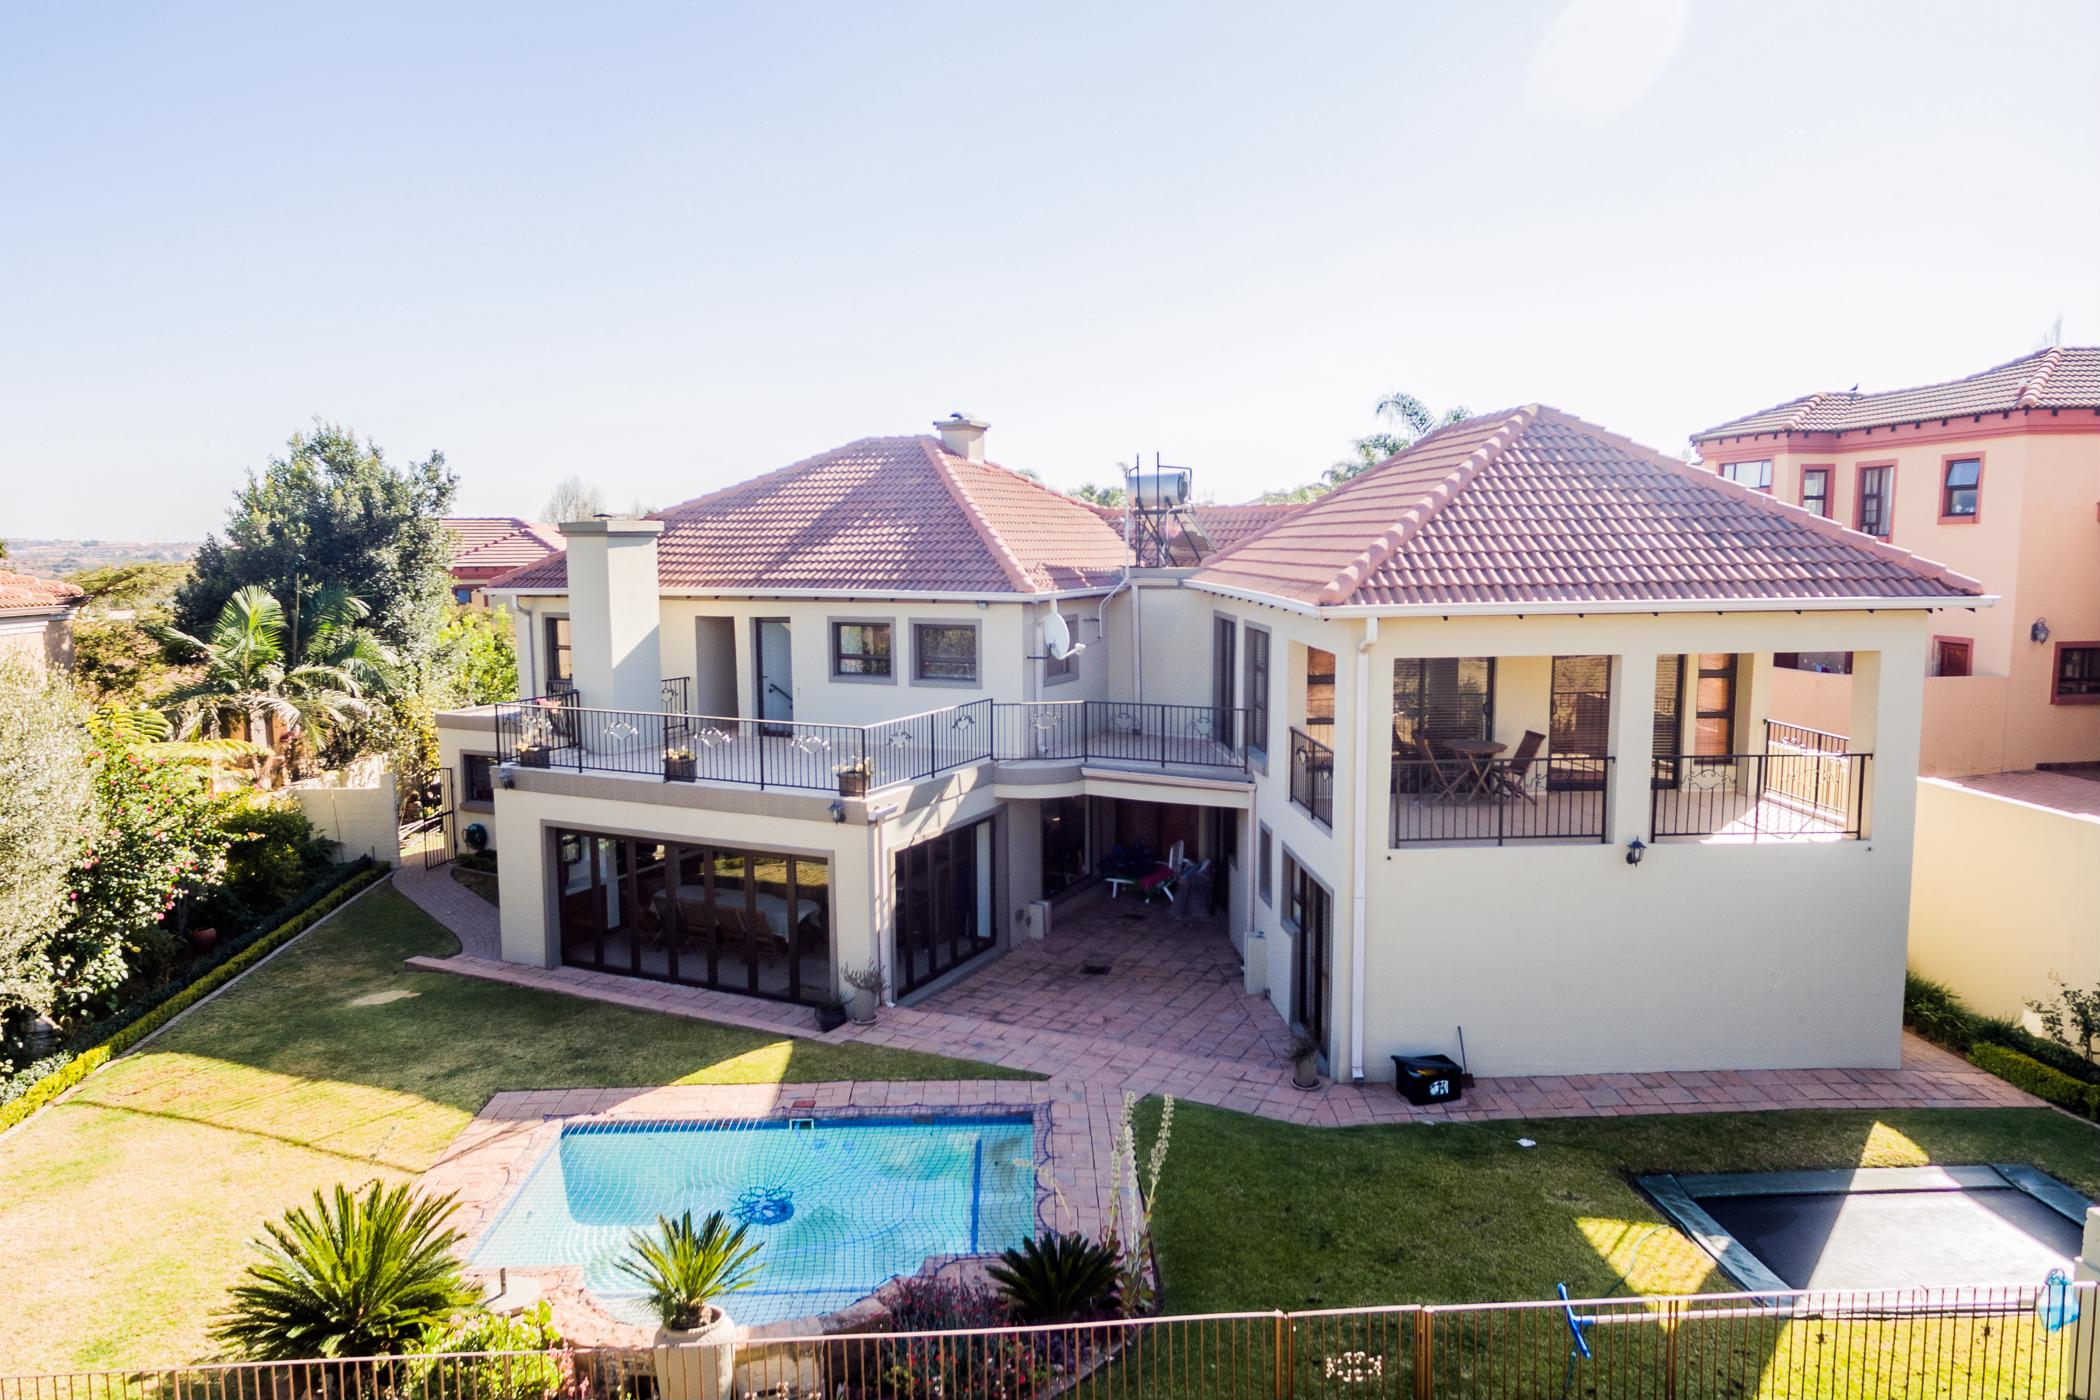 https://listing.pamgolding.co.za/images/properties/201811/1126502/H/1126502_H_33.jpg